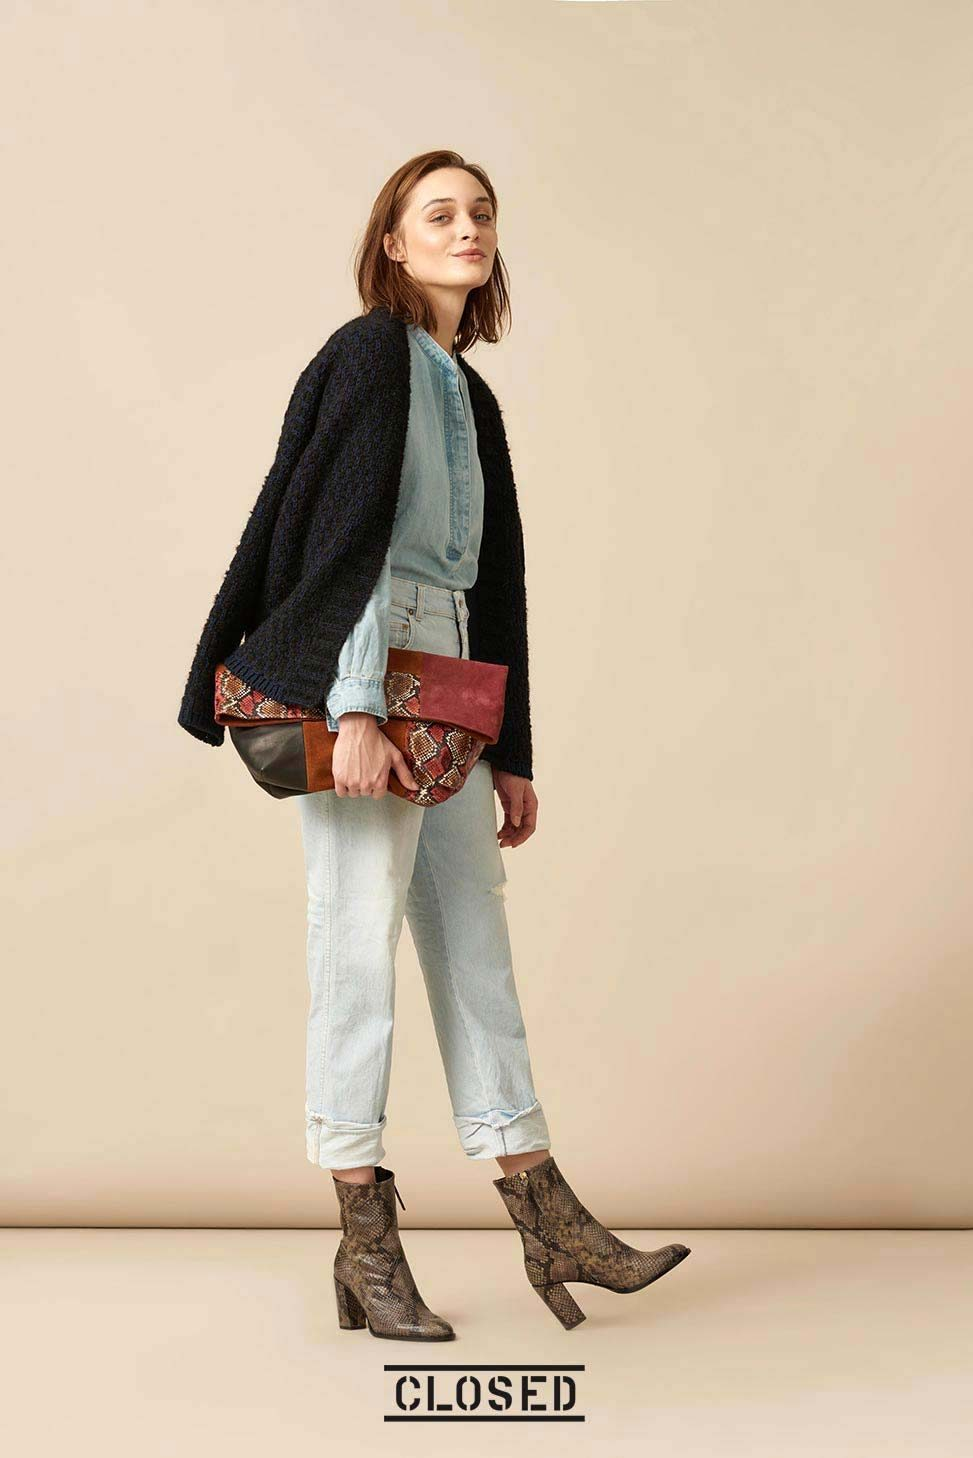 Denim Schluppenbluse, Falt-Clutch im Patchwork-Look - im Mix aus Velours- und Glattleder, Patches in Python-Optik mit Reptilprägung, Jeans, Stiefeletten in Python-Optik aus Ziegenleder mit Reptilprägung.